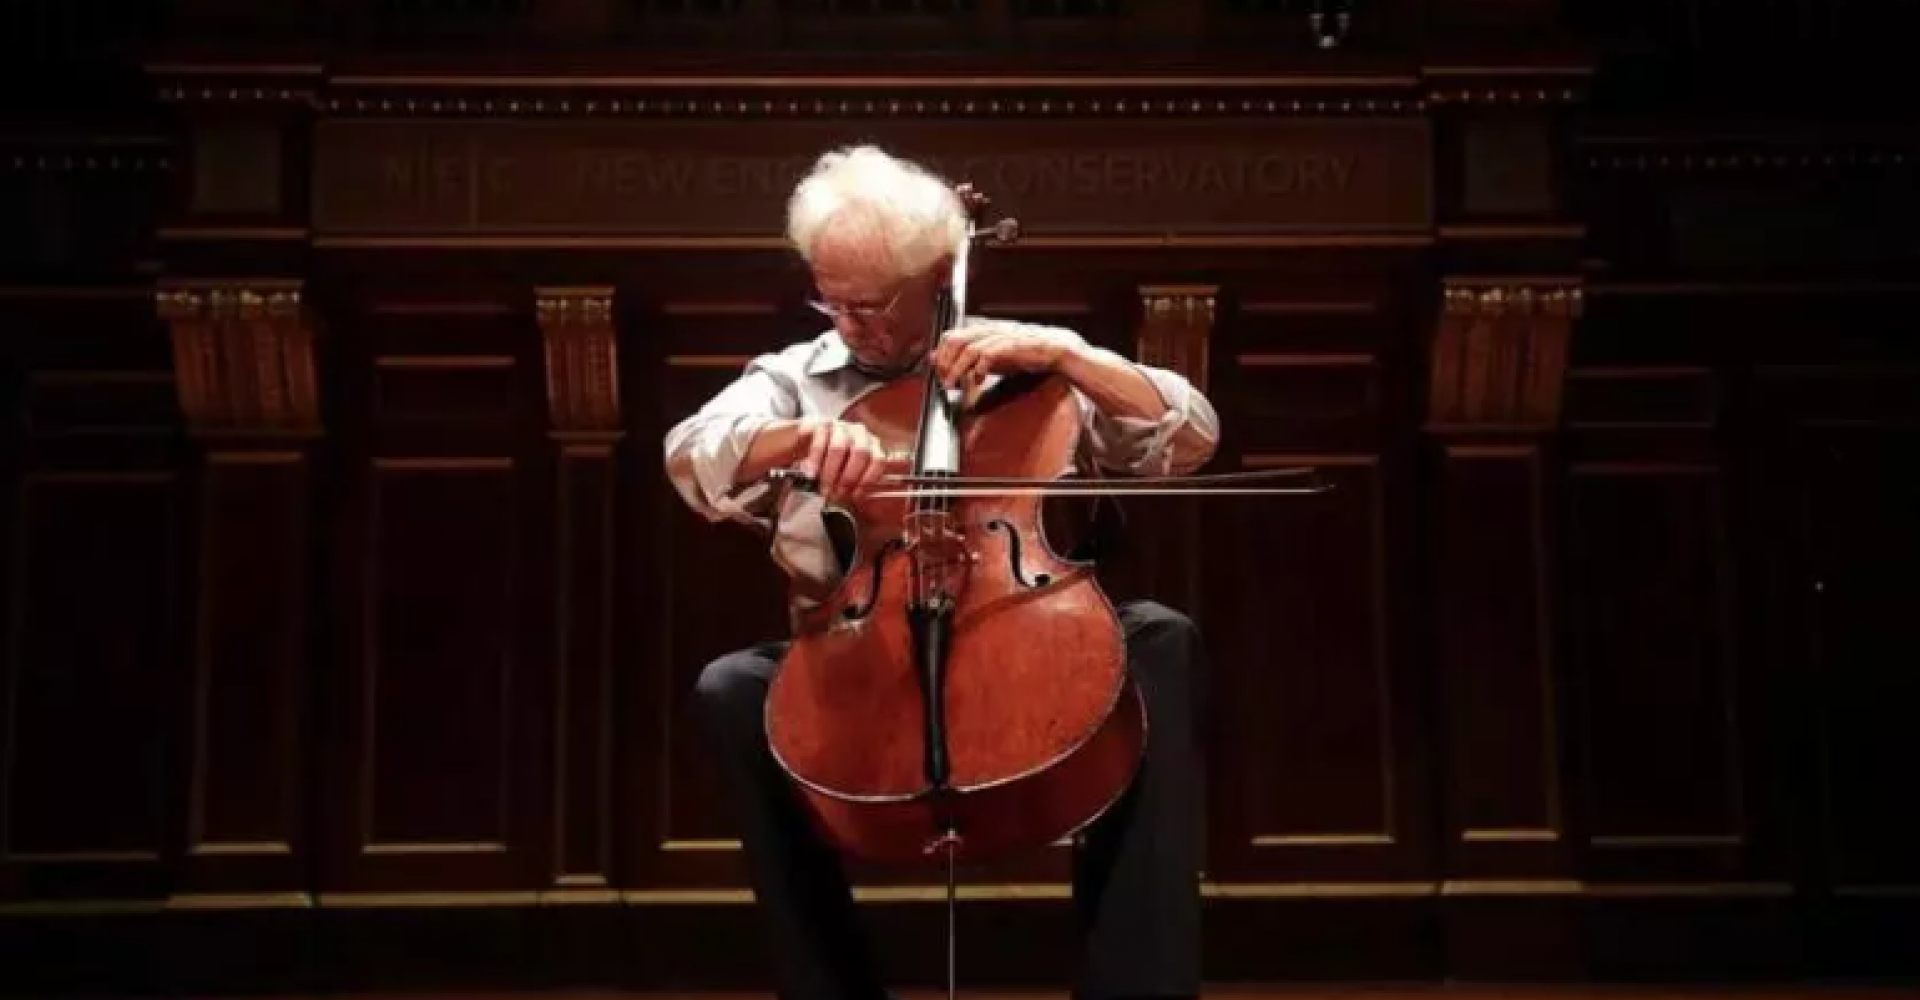 laurence lesser playing cello in jordan hall